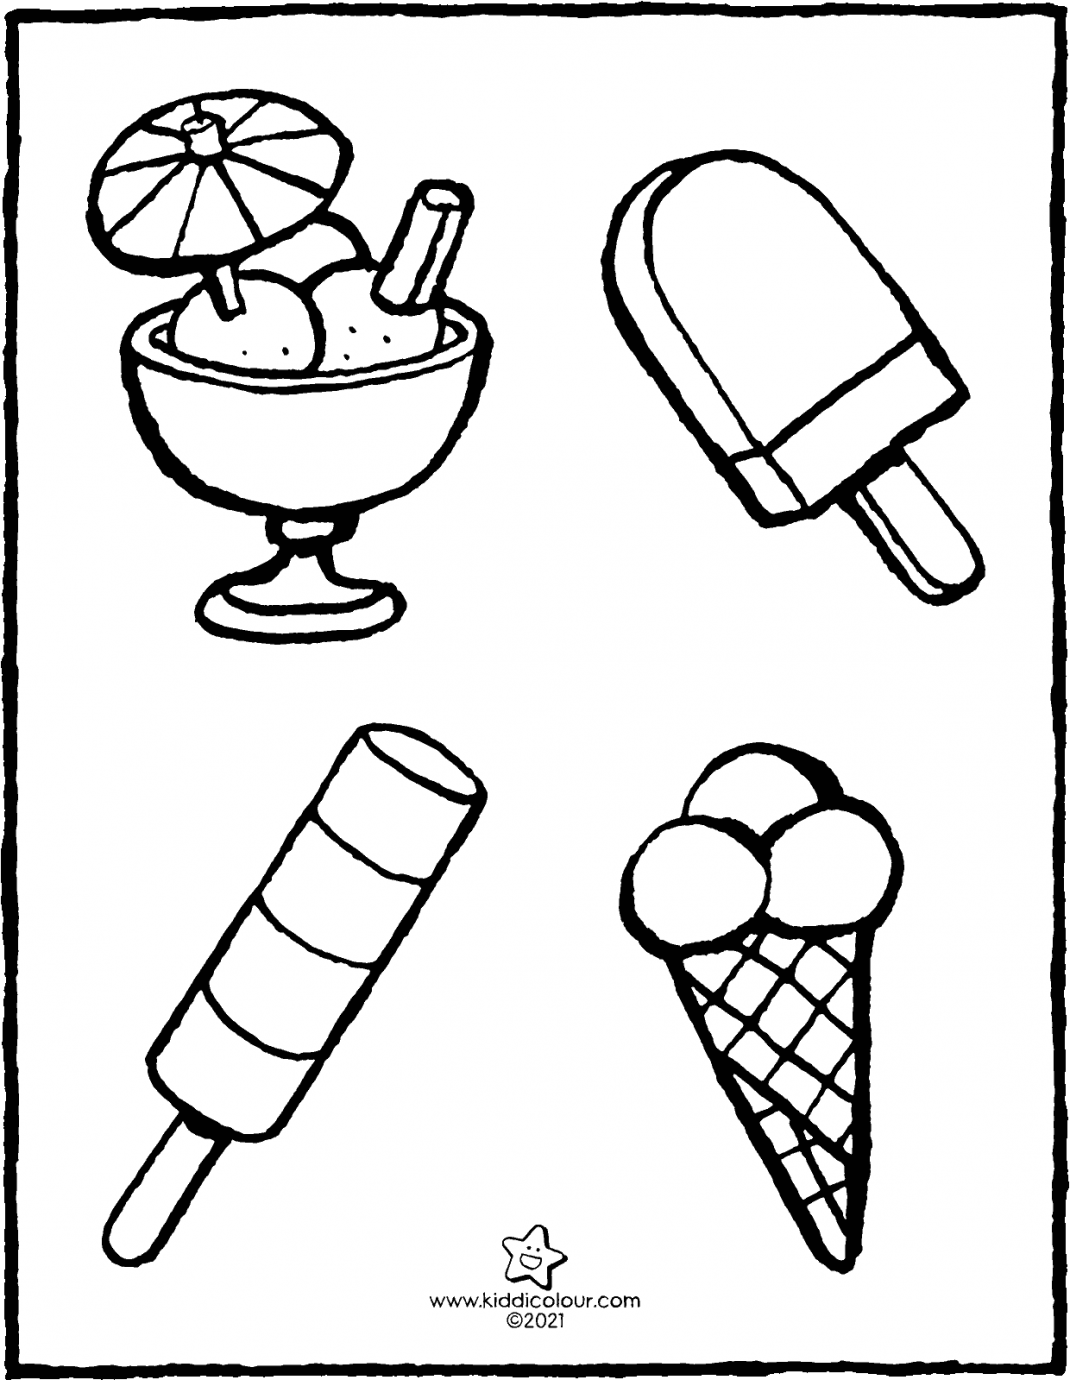 all kinds of ice creams colouring page drawing picture 01V